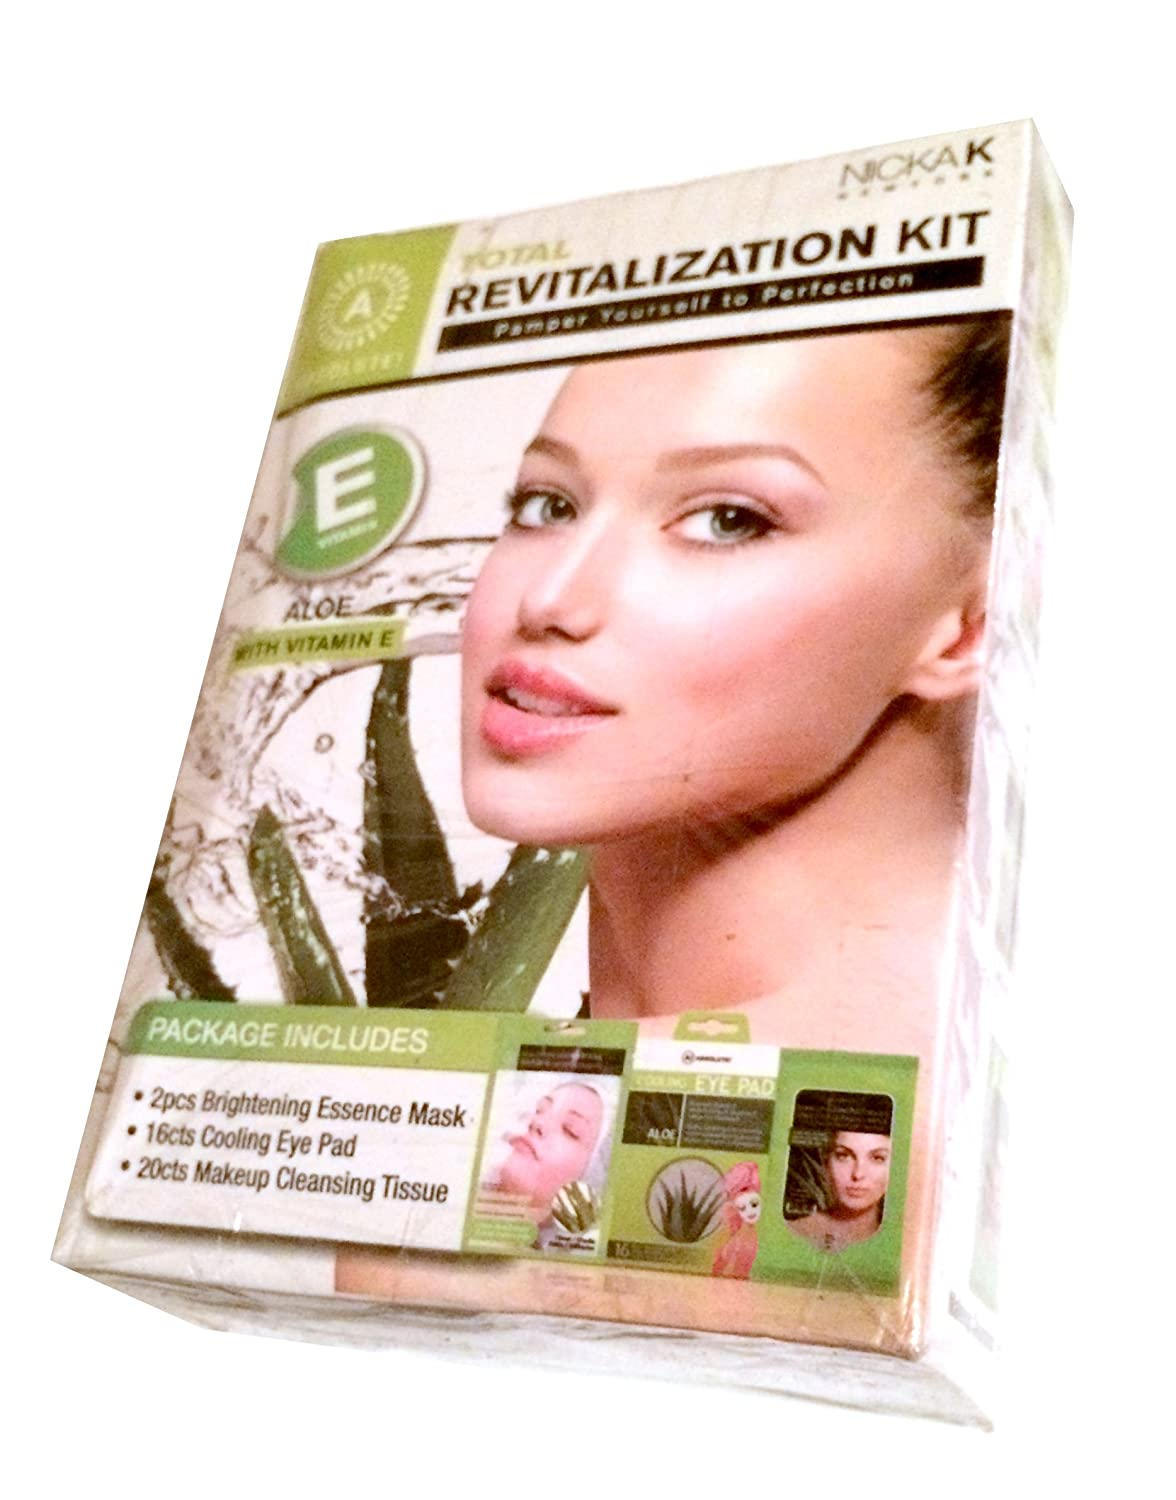 Absolute Total Revitalization Complete At Home Facial Spa Kit with Aloe & Vitamin E - Brightening Masks, Cooling Eye Pads, Cleansing Tissues